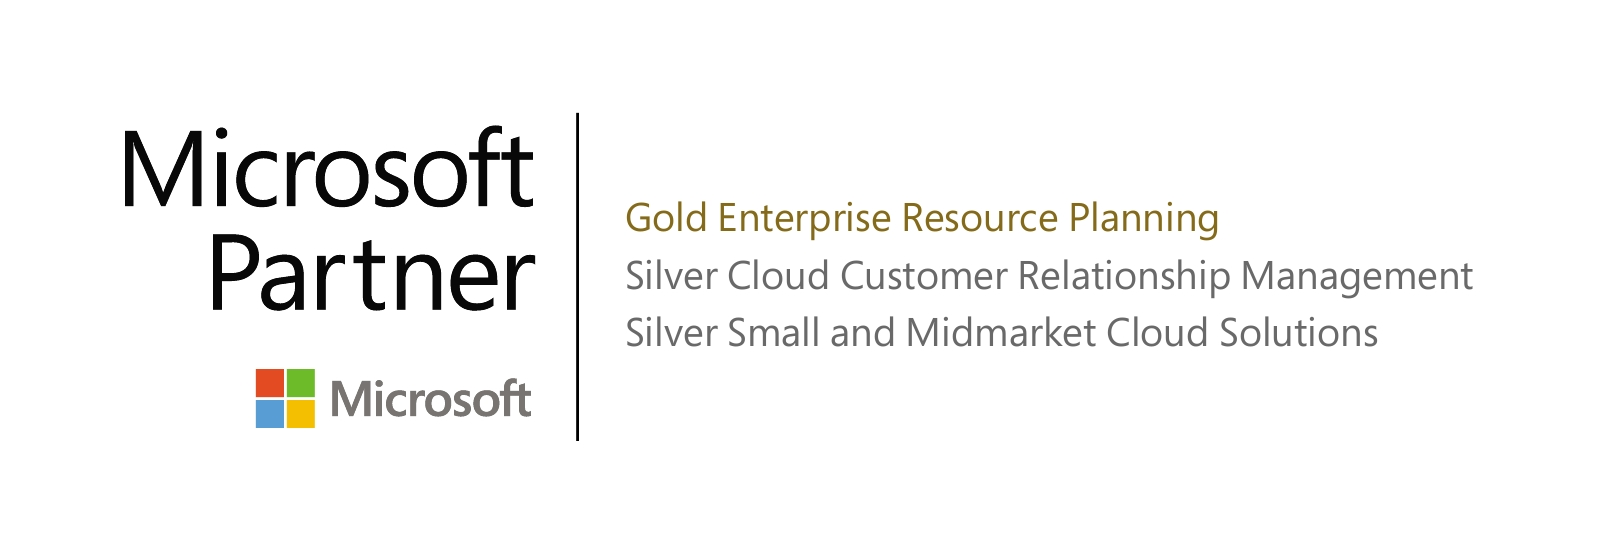 Microsoft Partner - Gold Enterprise Resource Planning